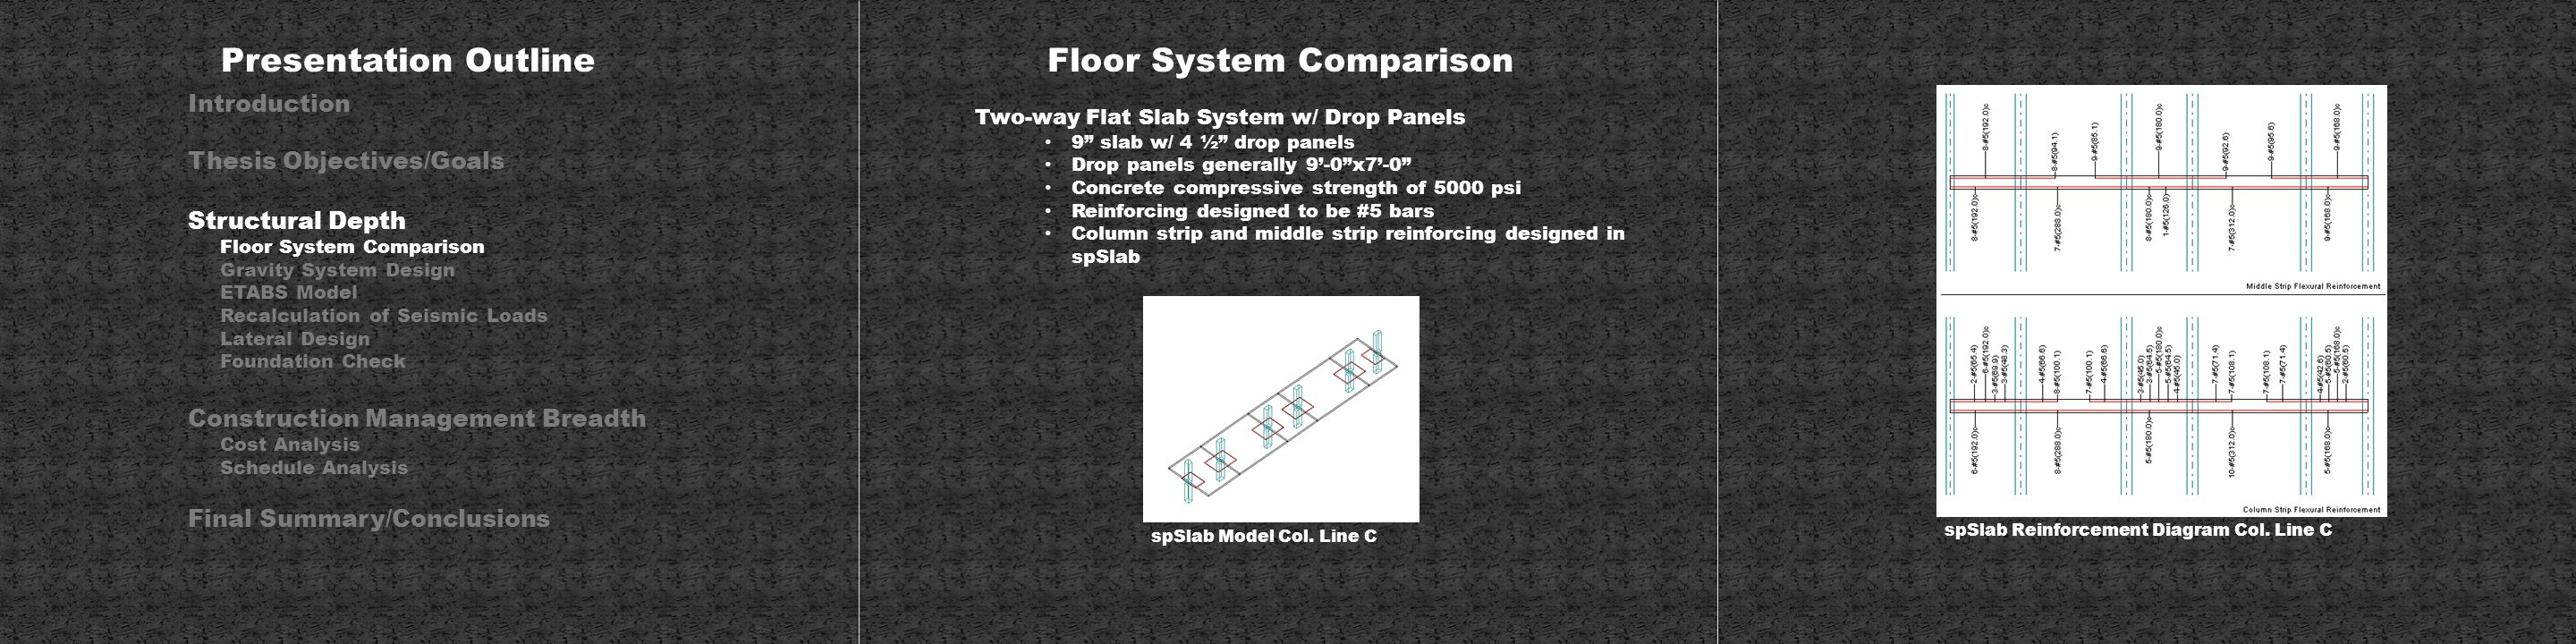 Floor System Comparison Two-way Flat Slab System w/ Drop Panels 9 slab w/ 4 ½ drop panels Drop panels generally 9'-0 x7'-0 Concrete compressive strength of 5000 psi Reinforcing designed to be #5 bars Column strip and middle strip reinforcing designed in spSlab Presentation Outline Introduction Thesis Objectives/Goals Structural Depth Floor System Comparison Gravity System Design ETABS Model Recalculation of Seismic Loads Lateral Design Foundation Check Construction Management Breadth Cost Analysis Schedule Analysis Final Summary/Conclusions spSlab Model Col.